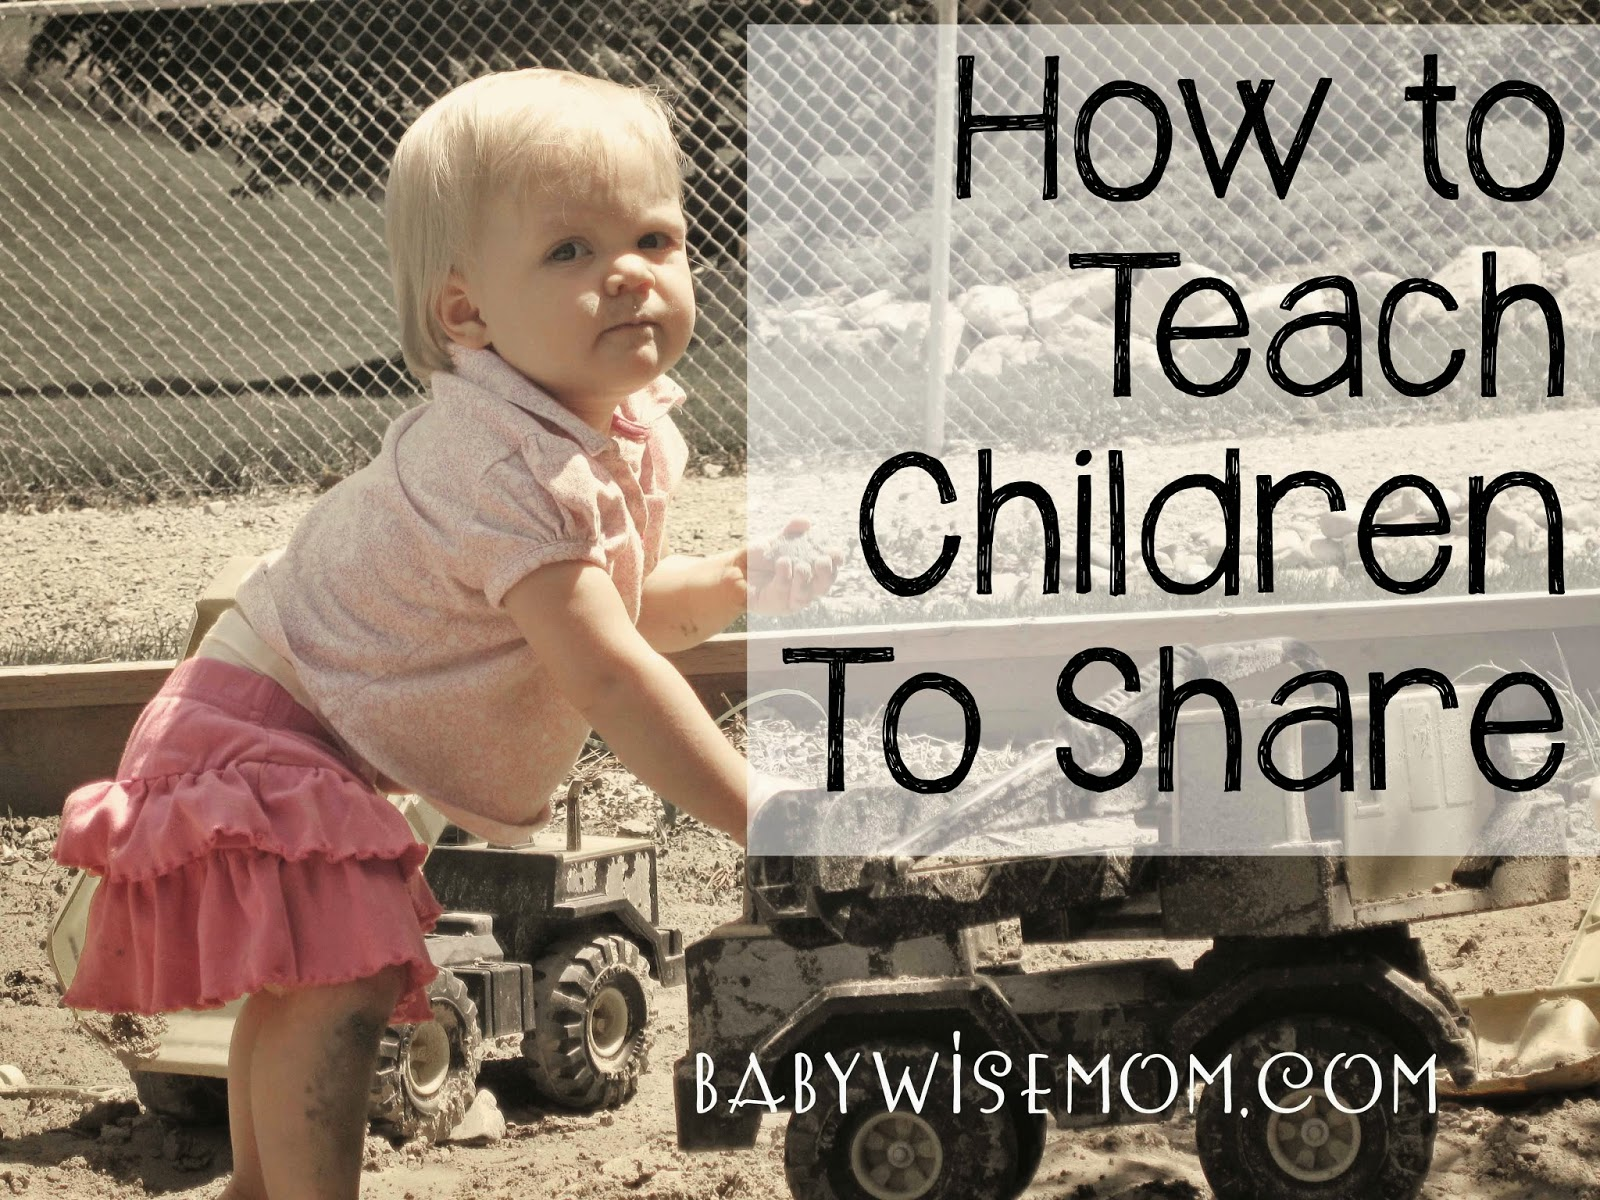 How To Teach Children to Share